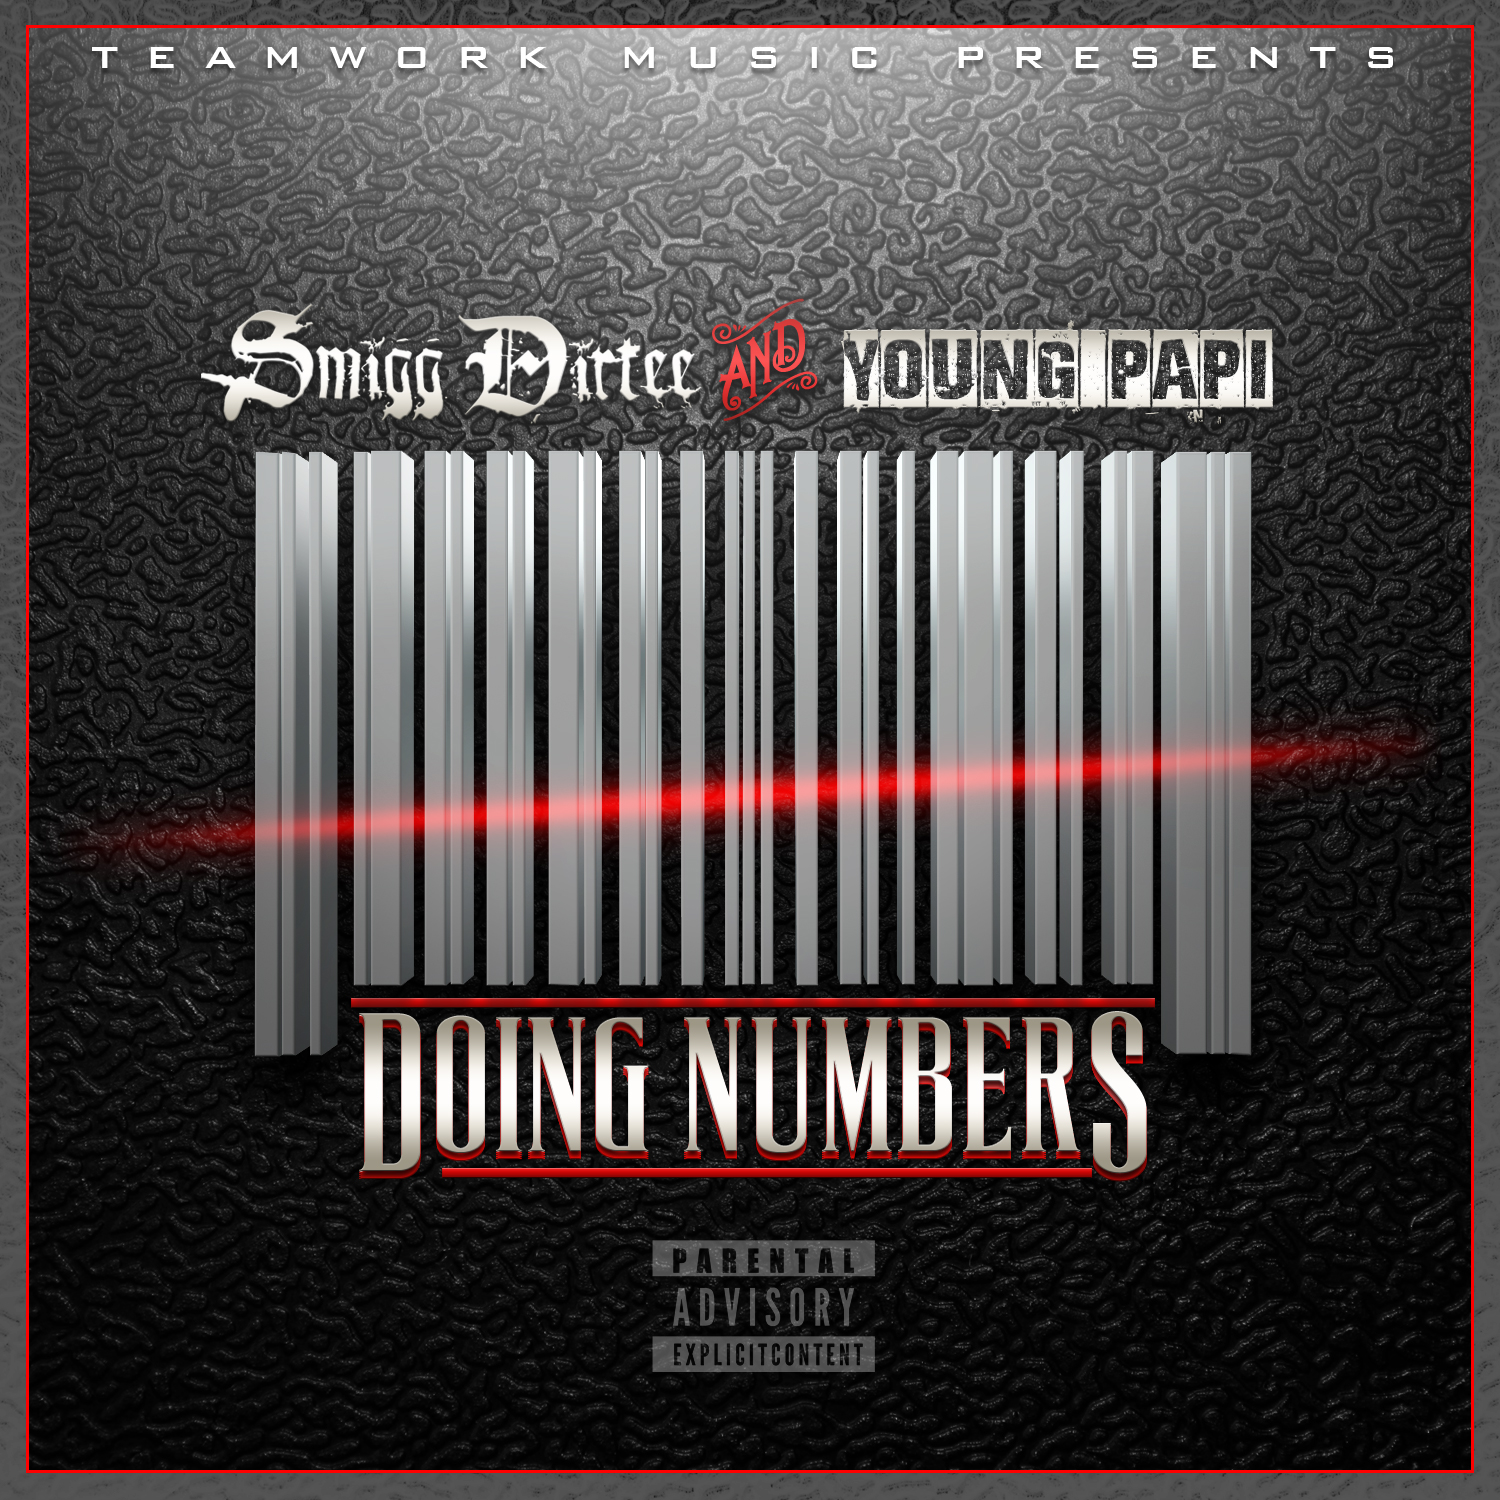 00 Doing Numbers (Full Album on iTunes 4_1)